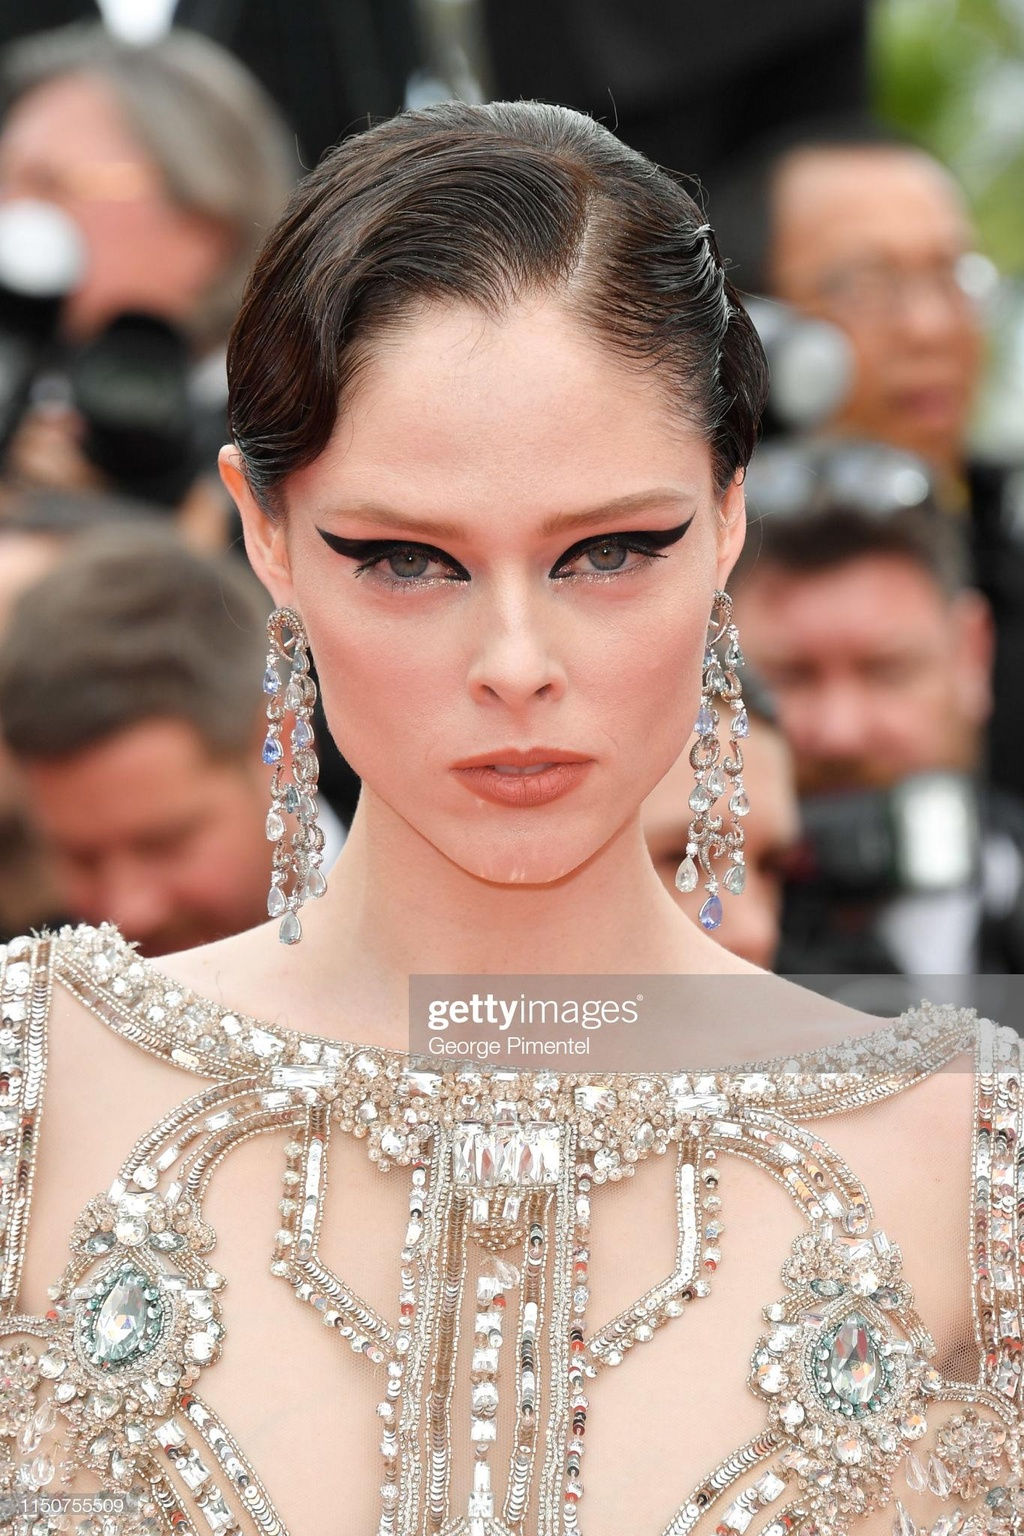 Lien hoan phim Cannes 2019 anh 4